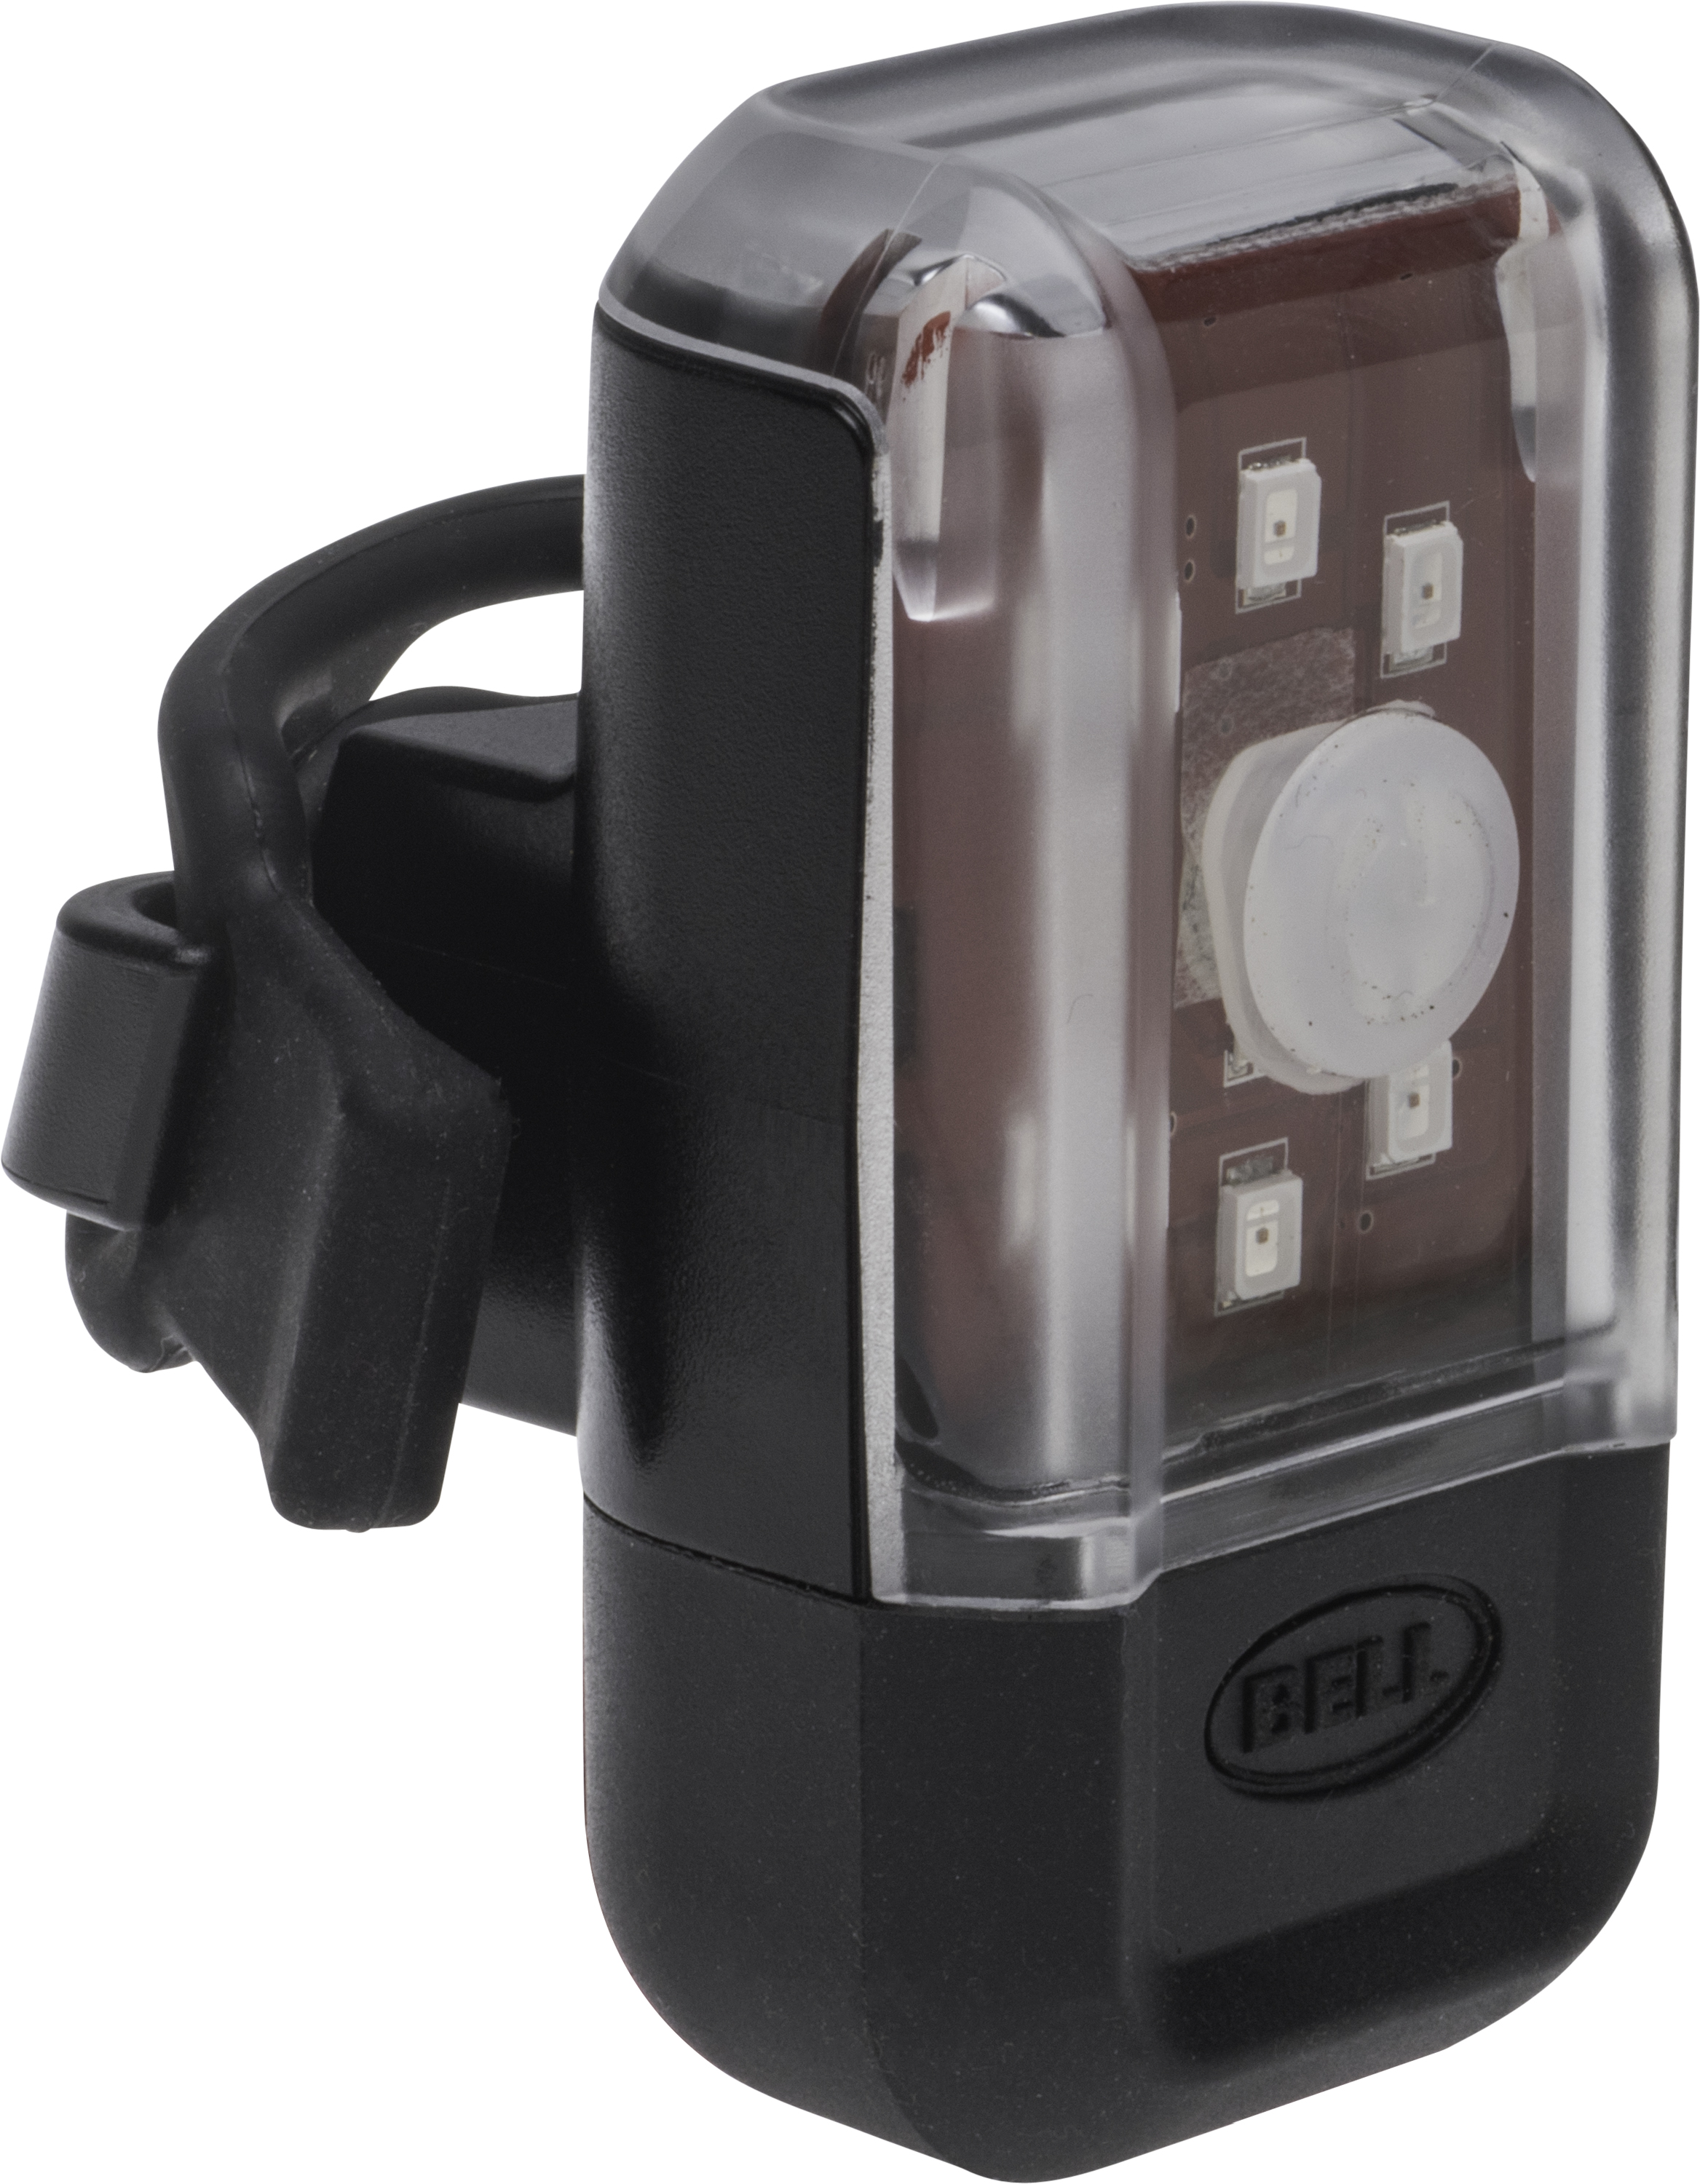 Bell Arella X50 USB Rechargeable Tail Light - Black